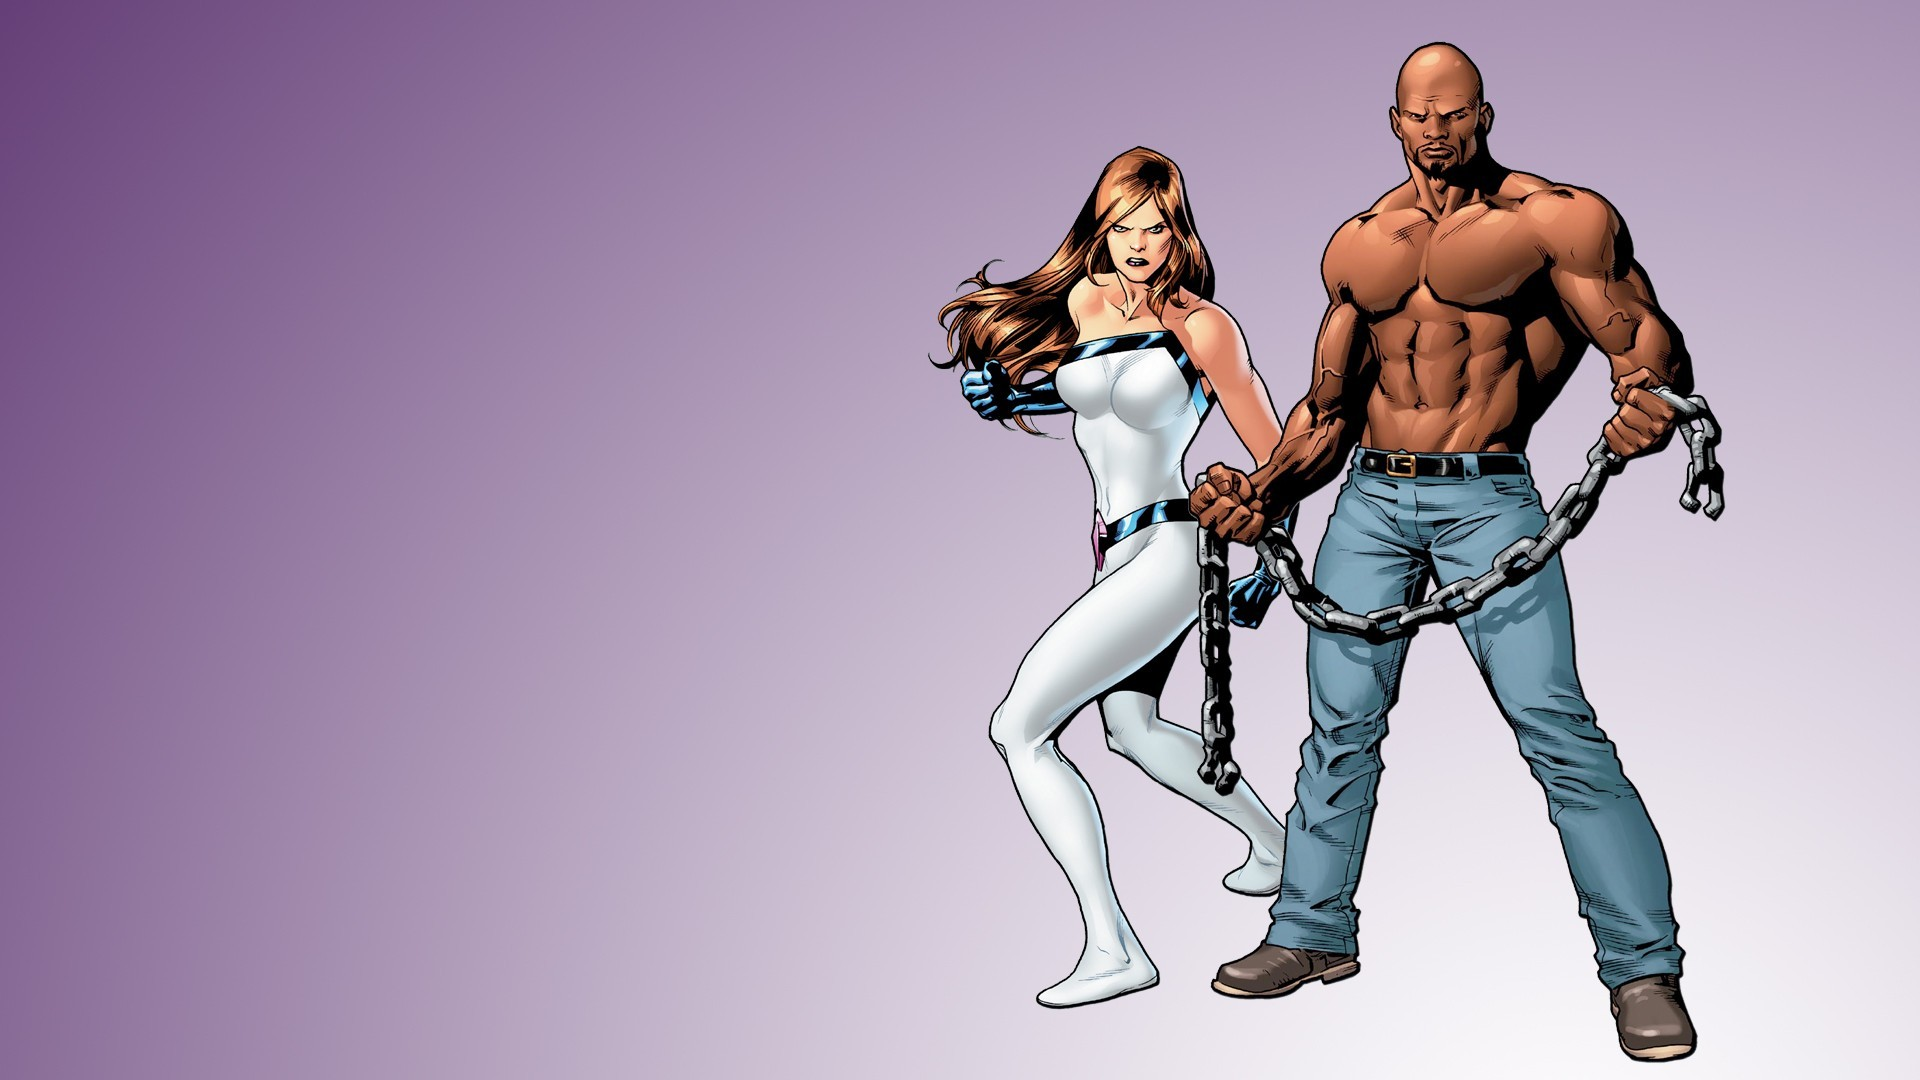 With Luke Cage